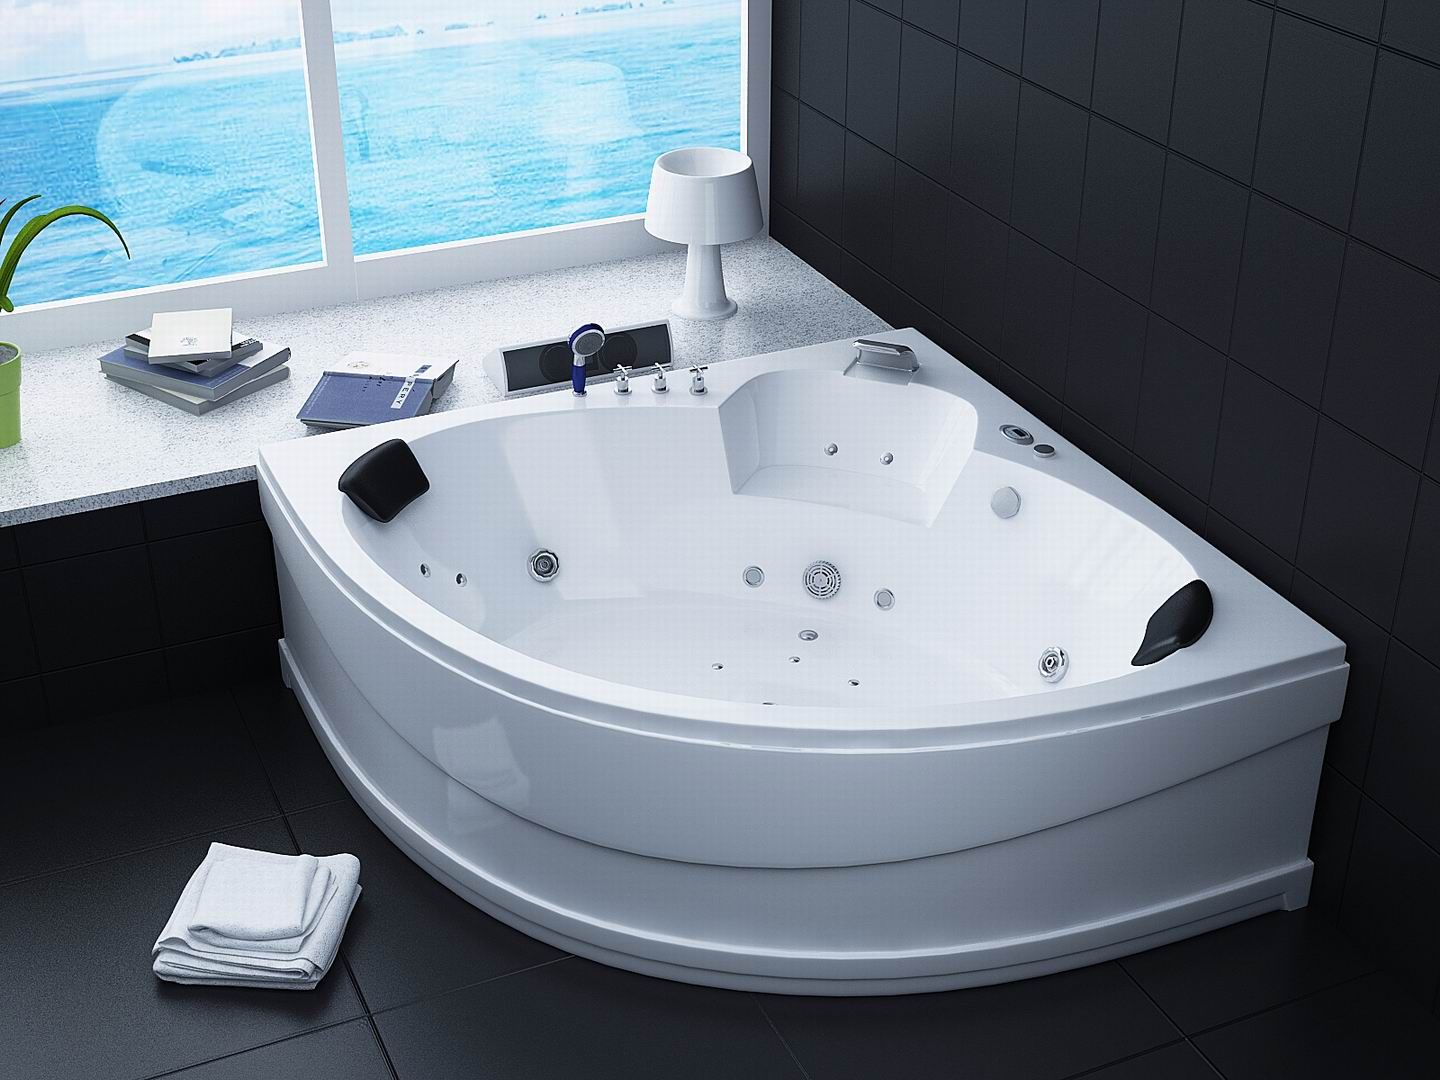 bathtubs   China Jacuzzi Bathtub  MT NR1801    large image for Jacuzzi  Bathtub. bathtubs   China Jacuzzi Bathtub  MT NR1801    large image for